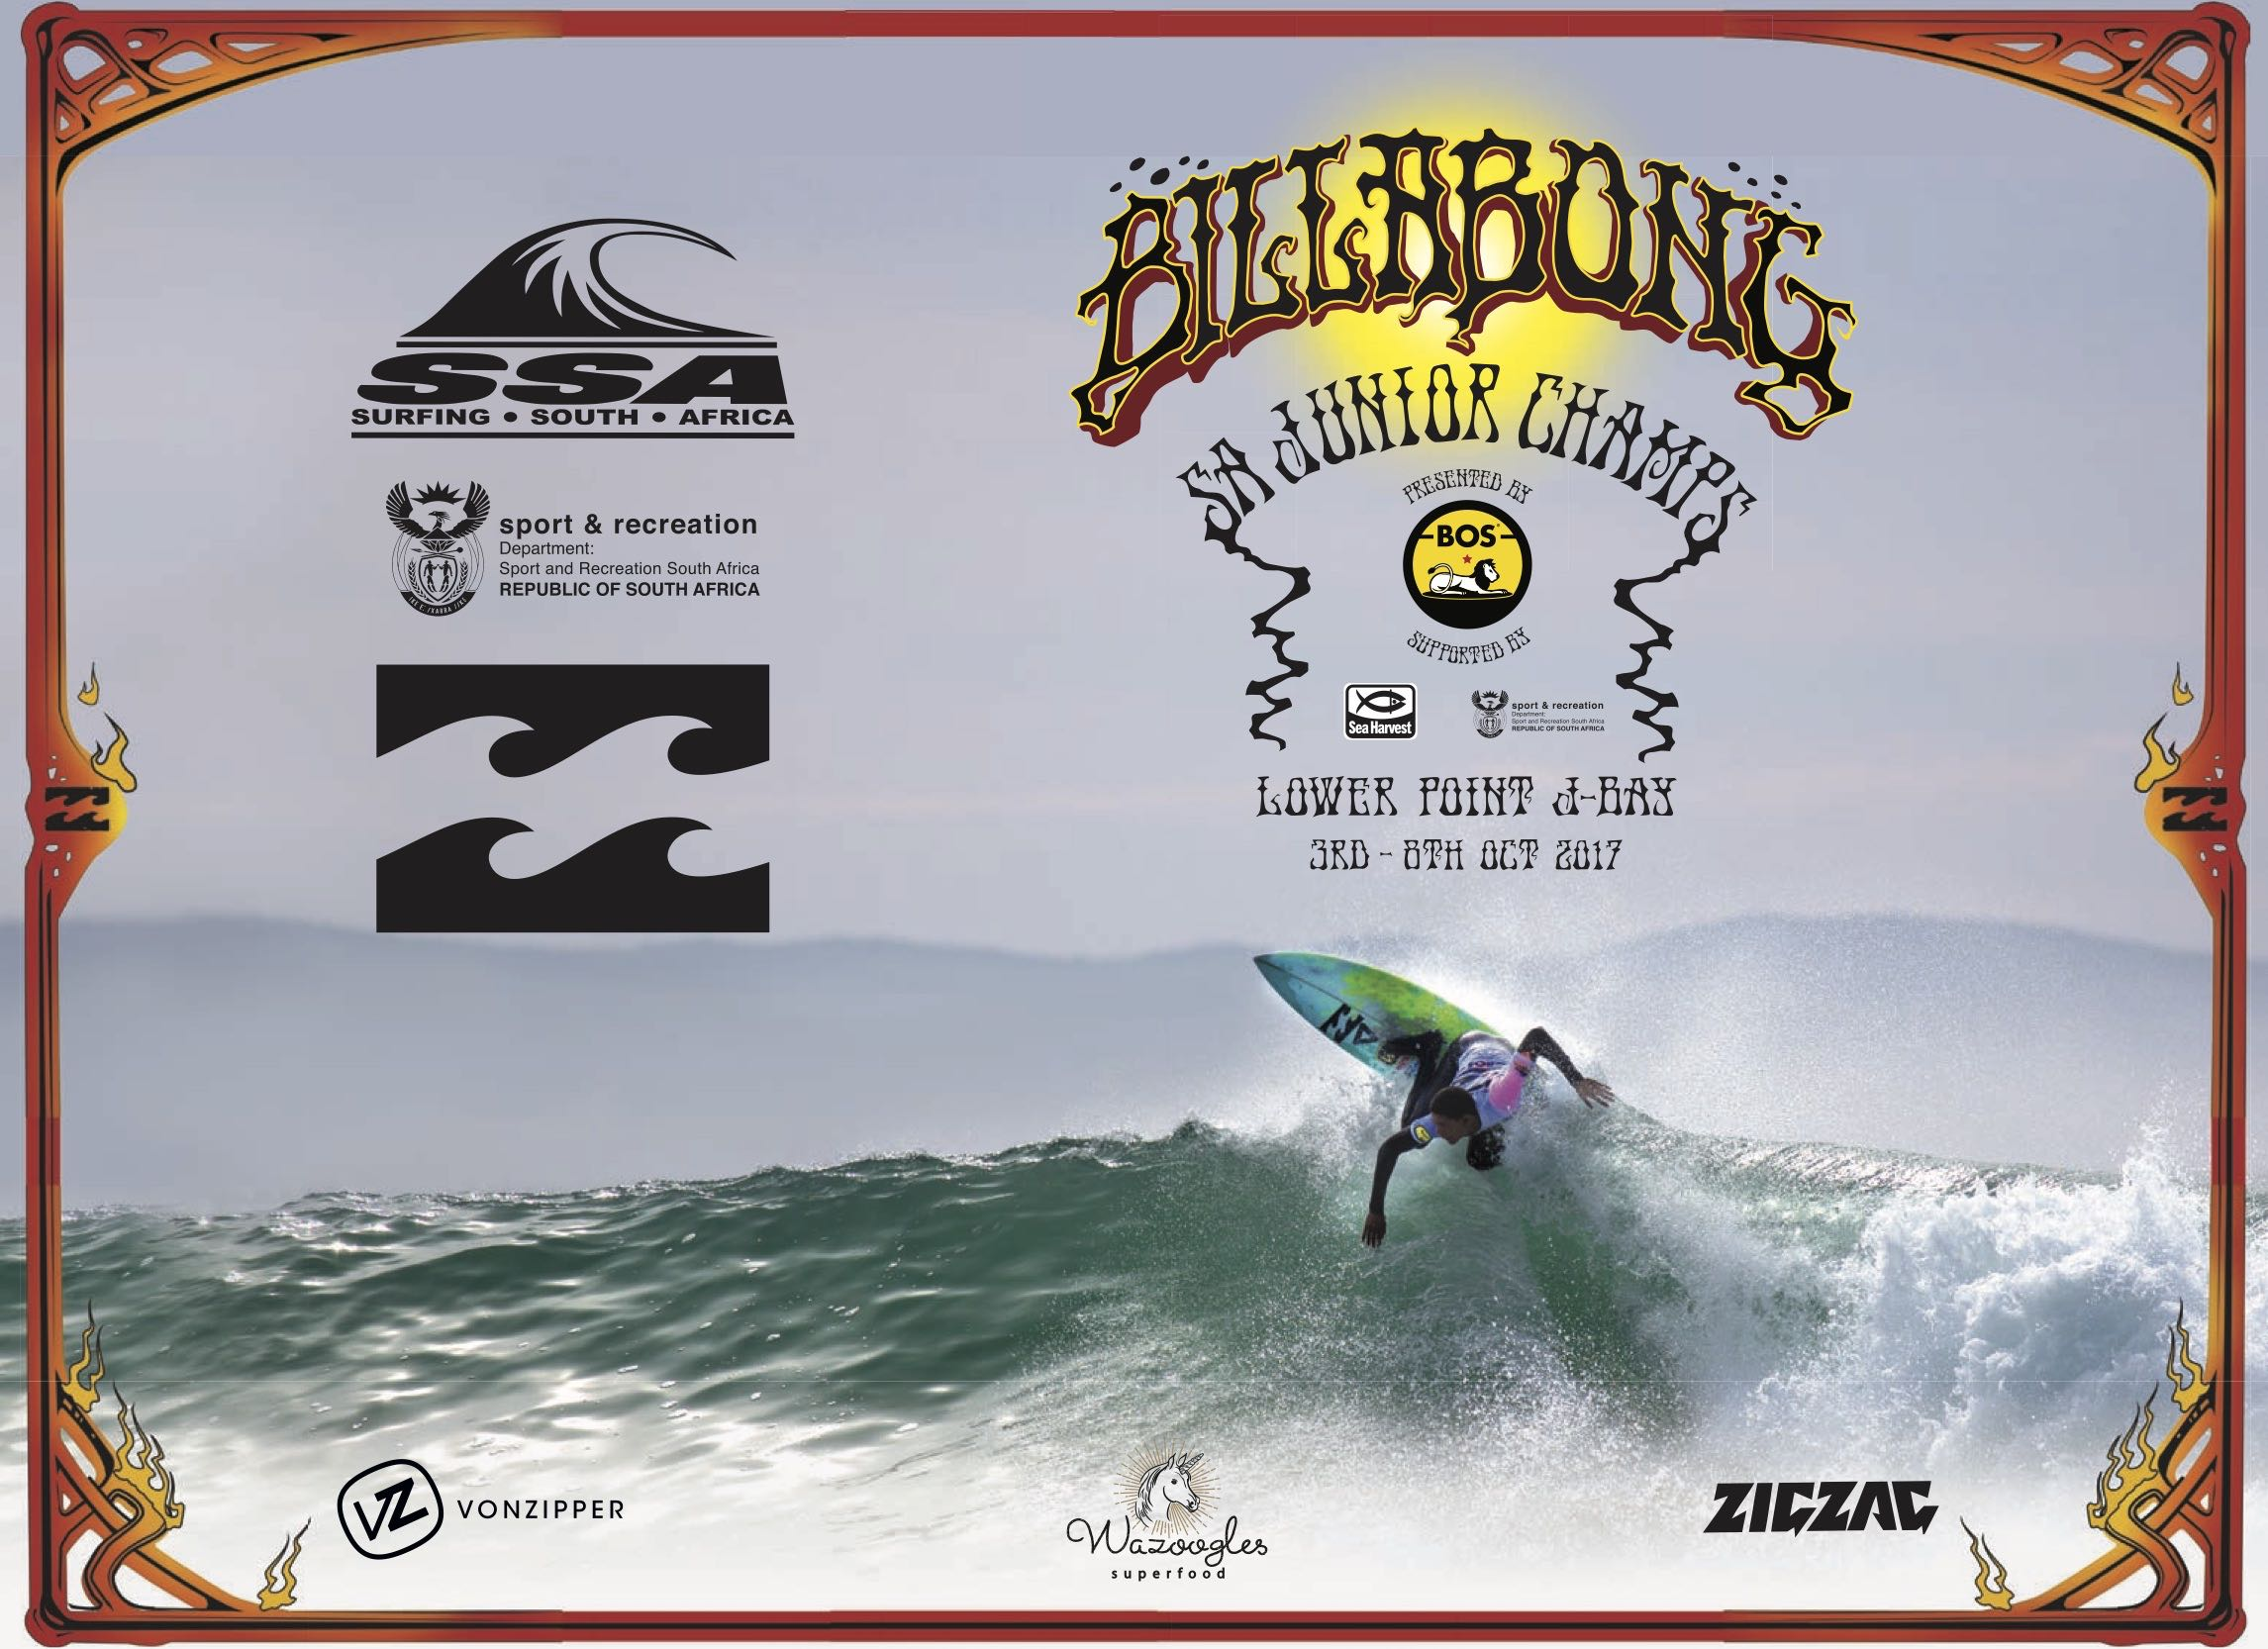 Details for the 2017 Billabong SA Junior Champs presented by BOS